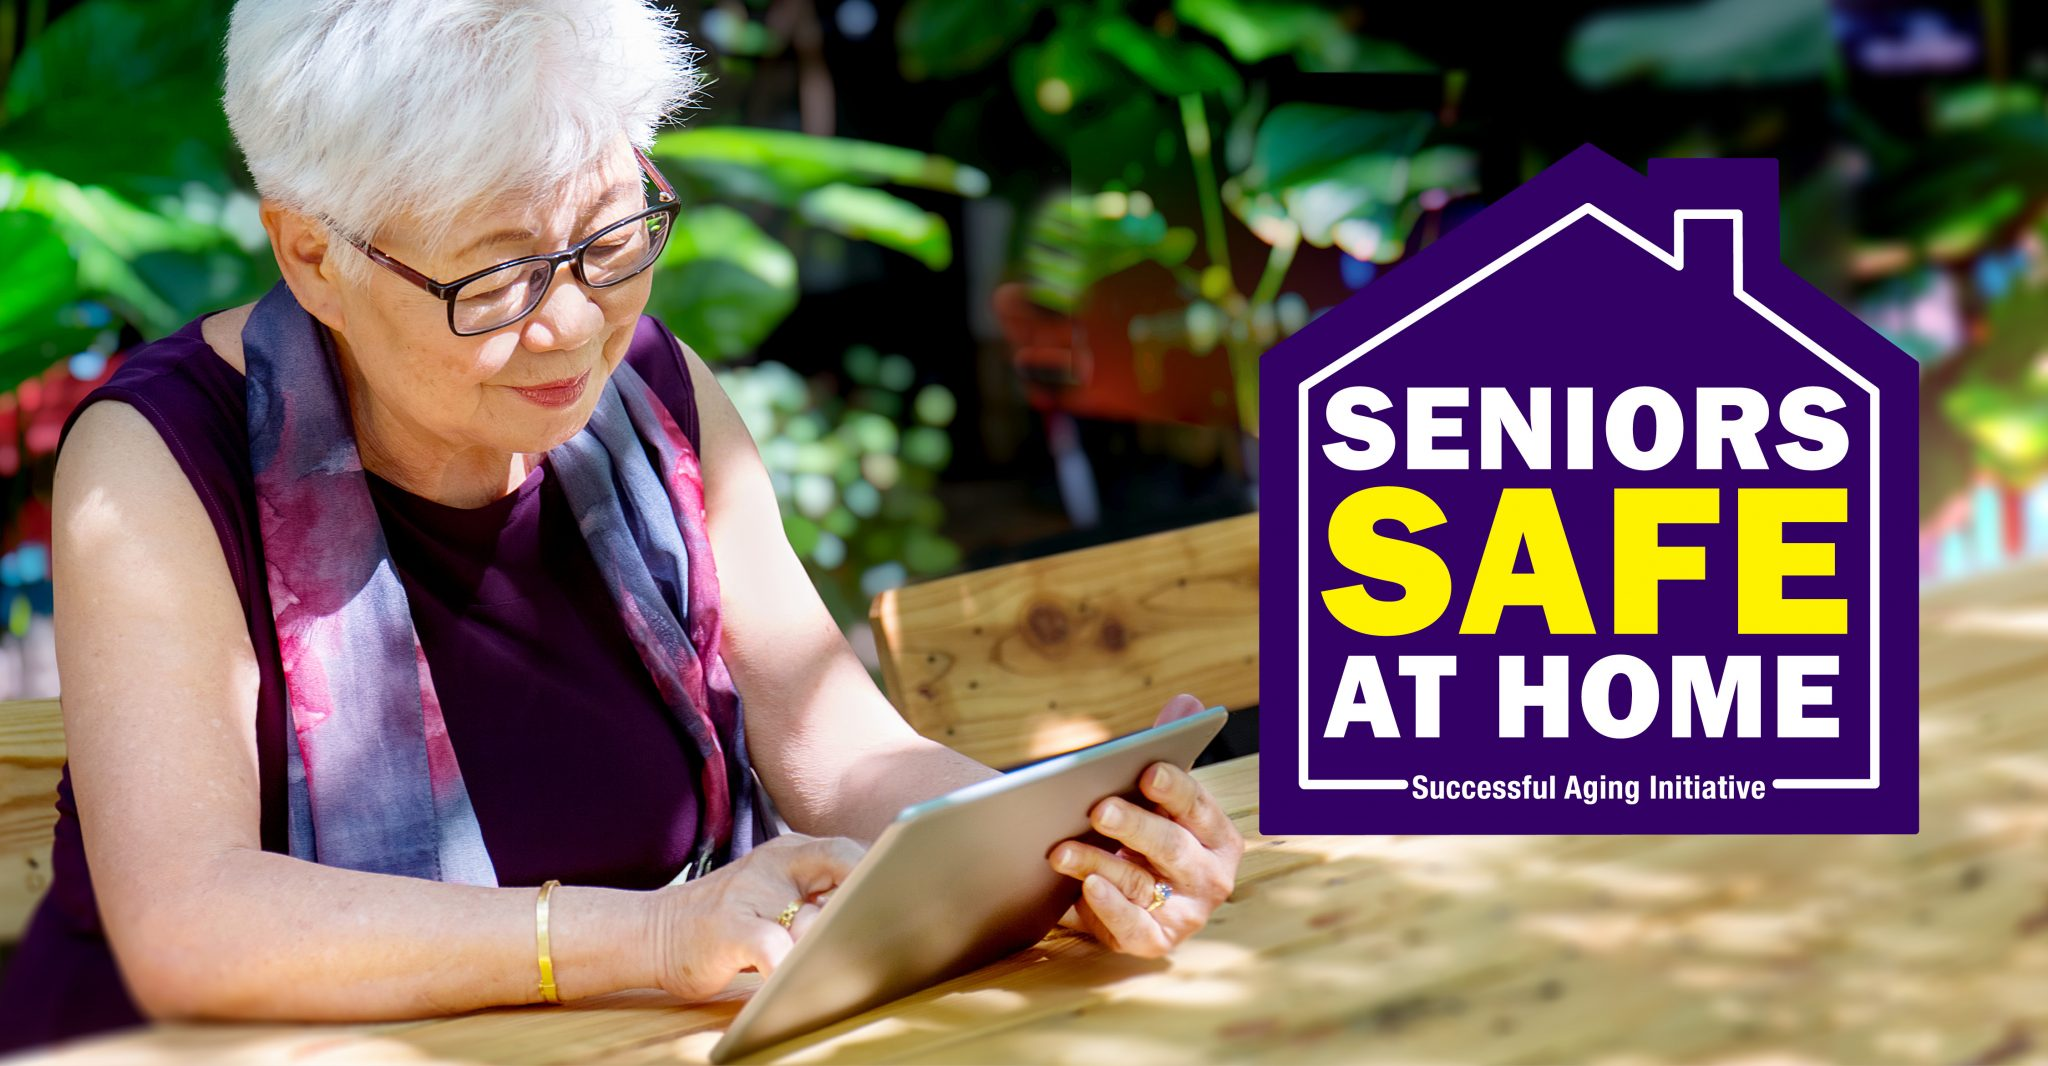 Asian American senior adult sits in her garden holding an ipad